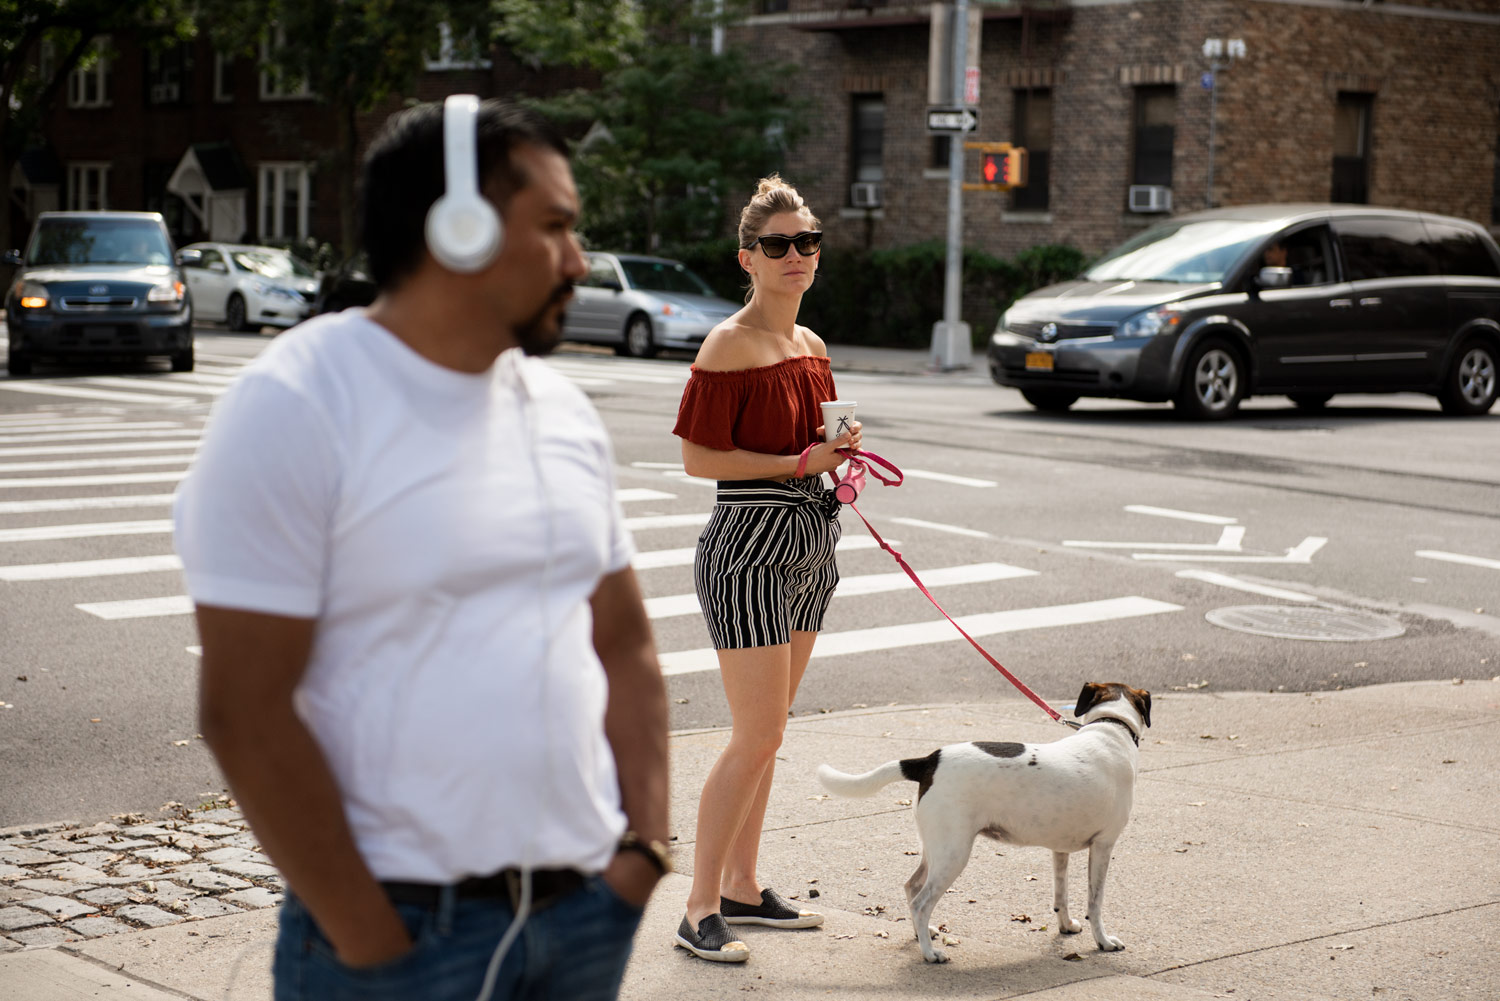 street scene, woman with dog, man wearing headphones